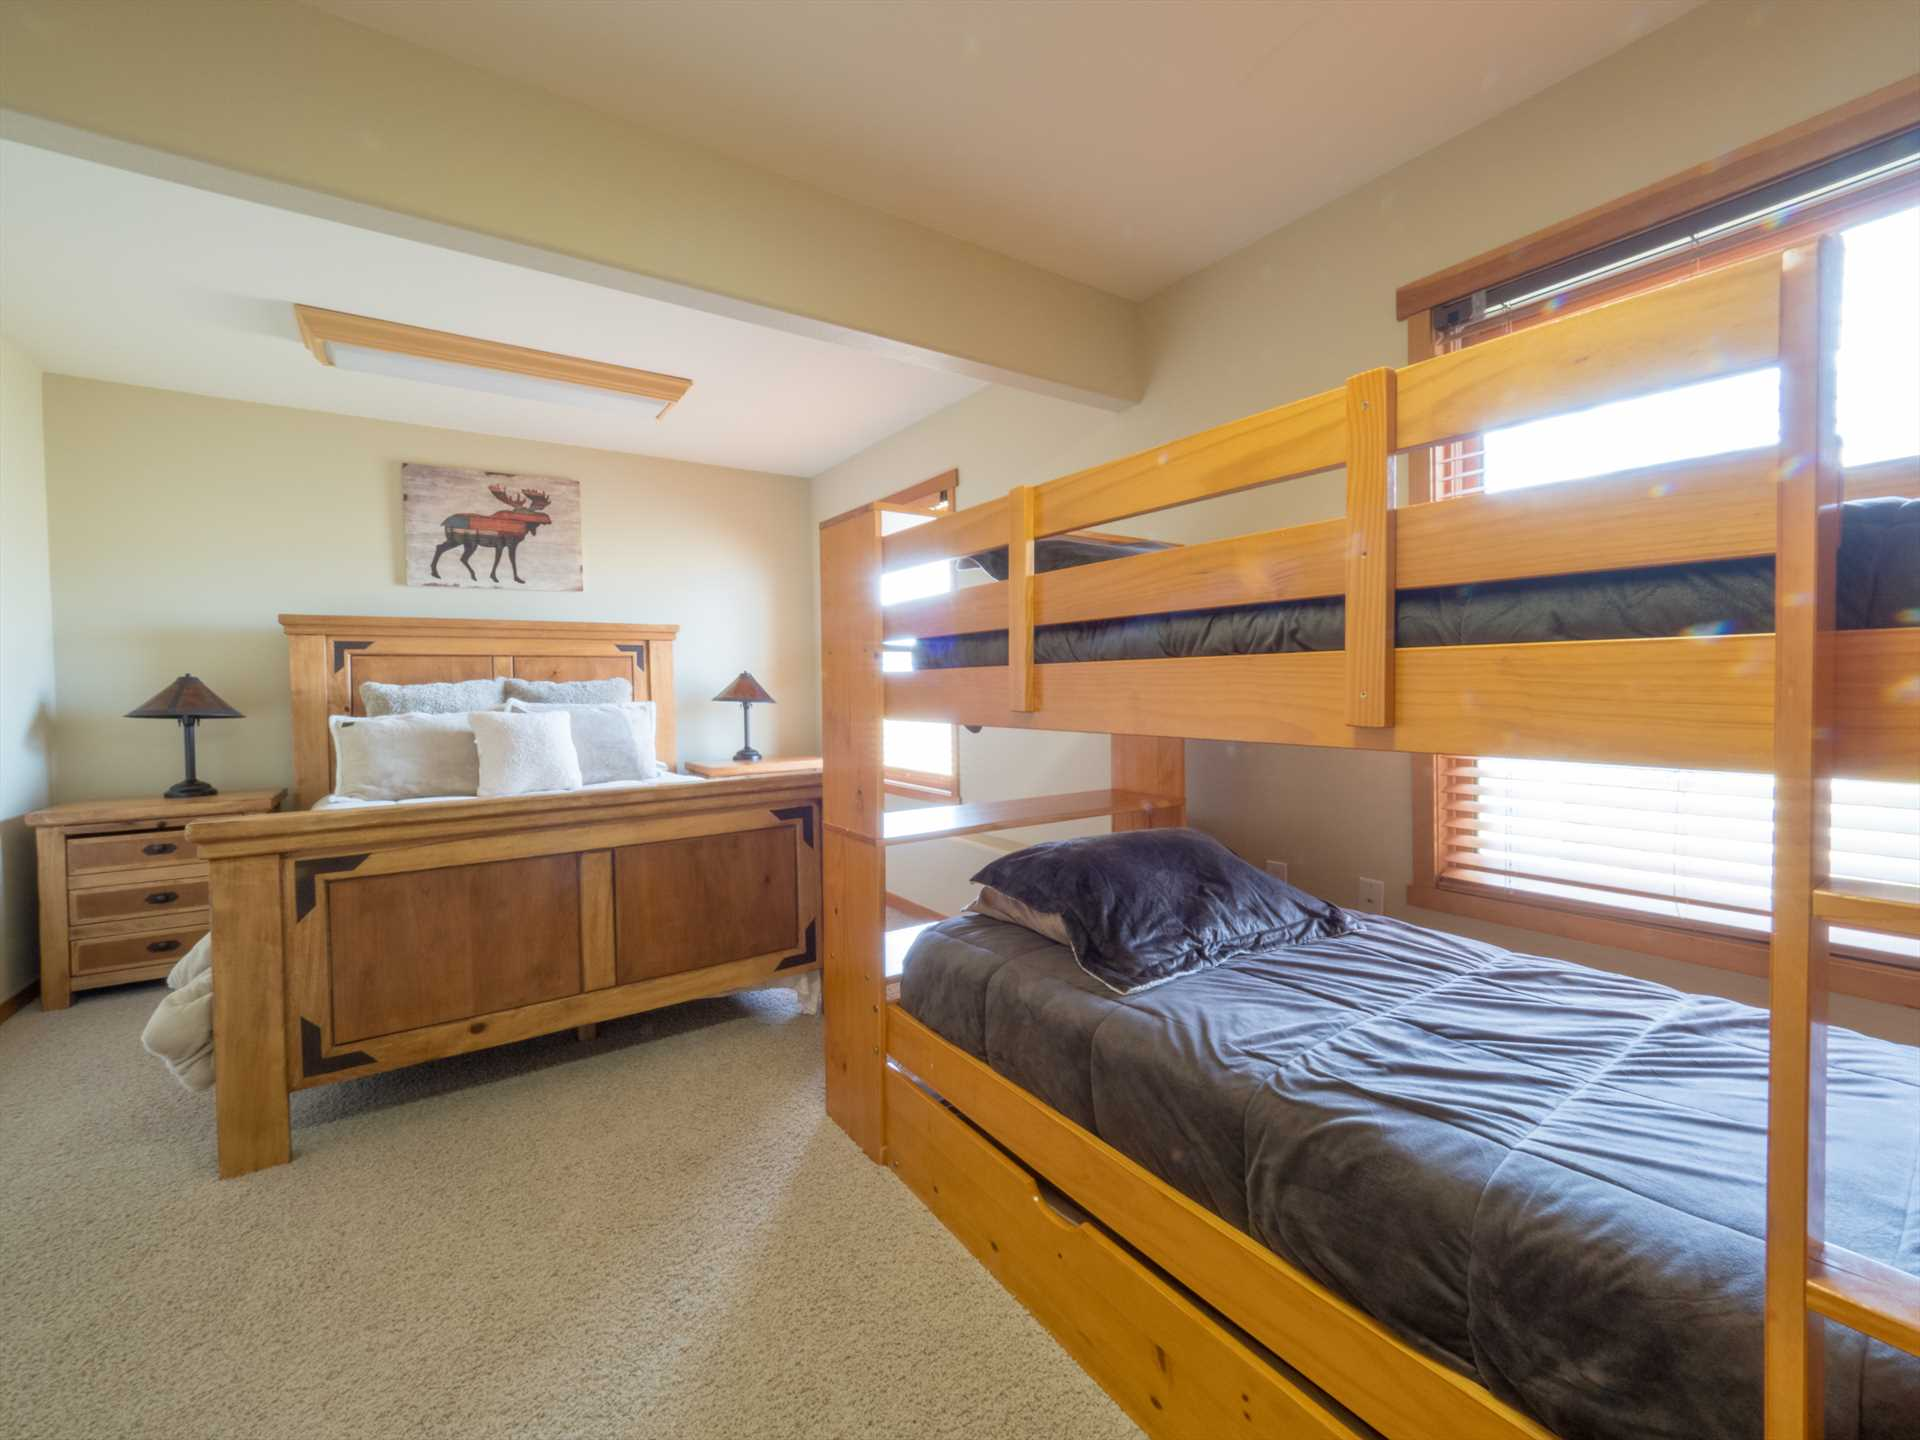 Lower level bunk room - queen, bunk bed, trundle